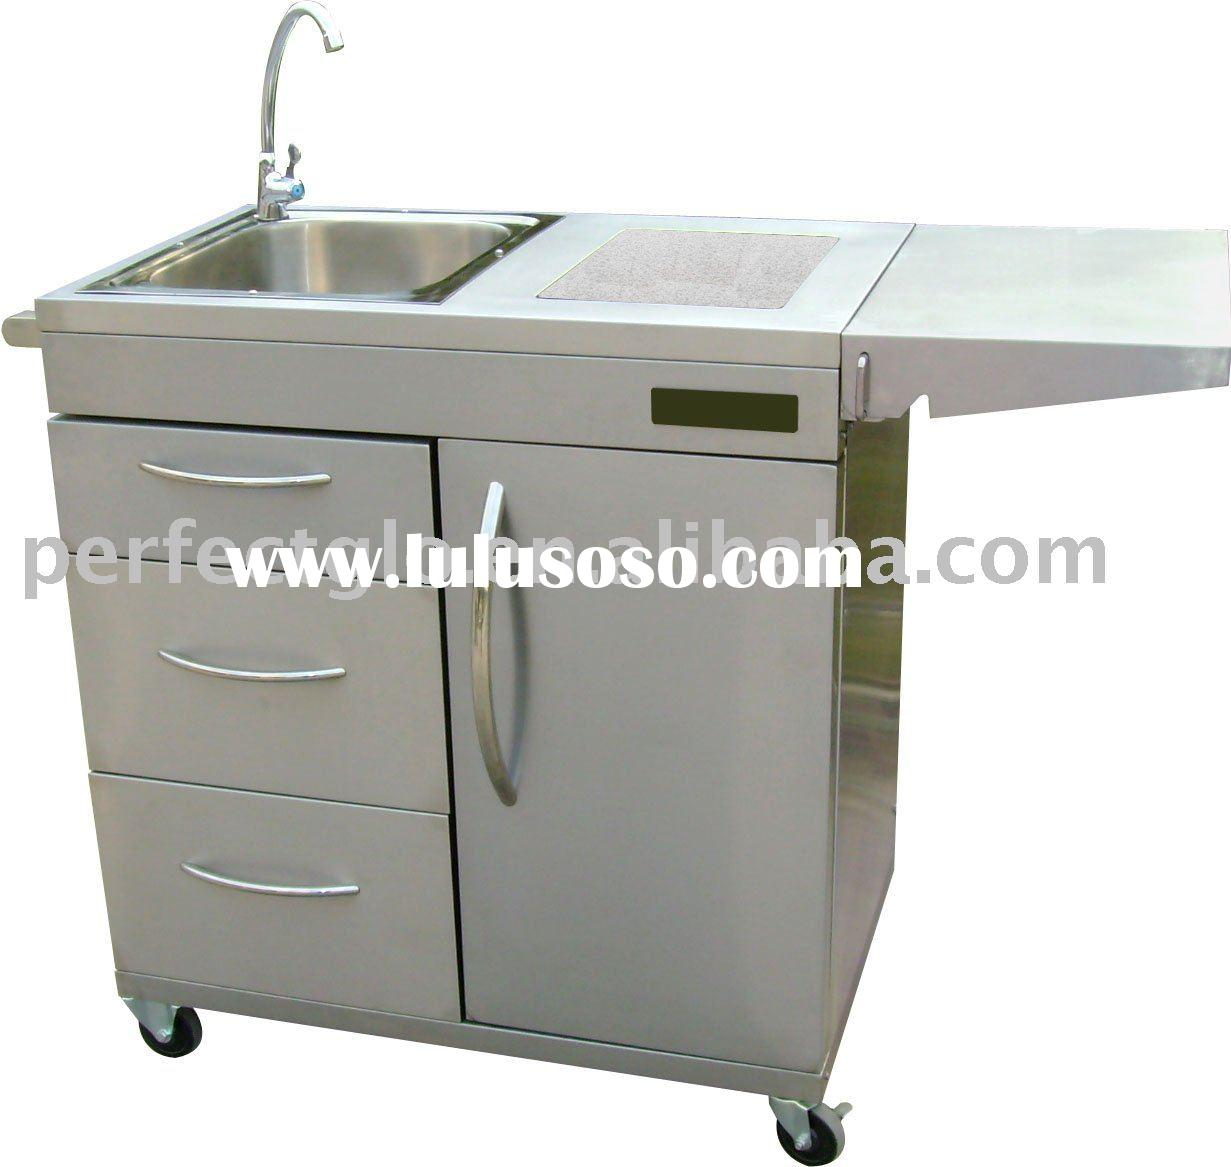 Suncast Outdoor Portable Sink Ideas